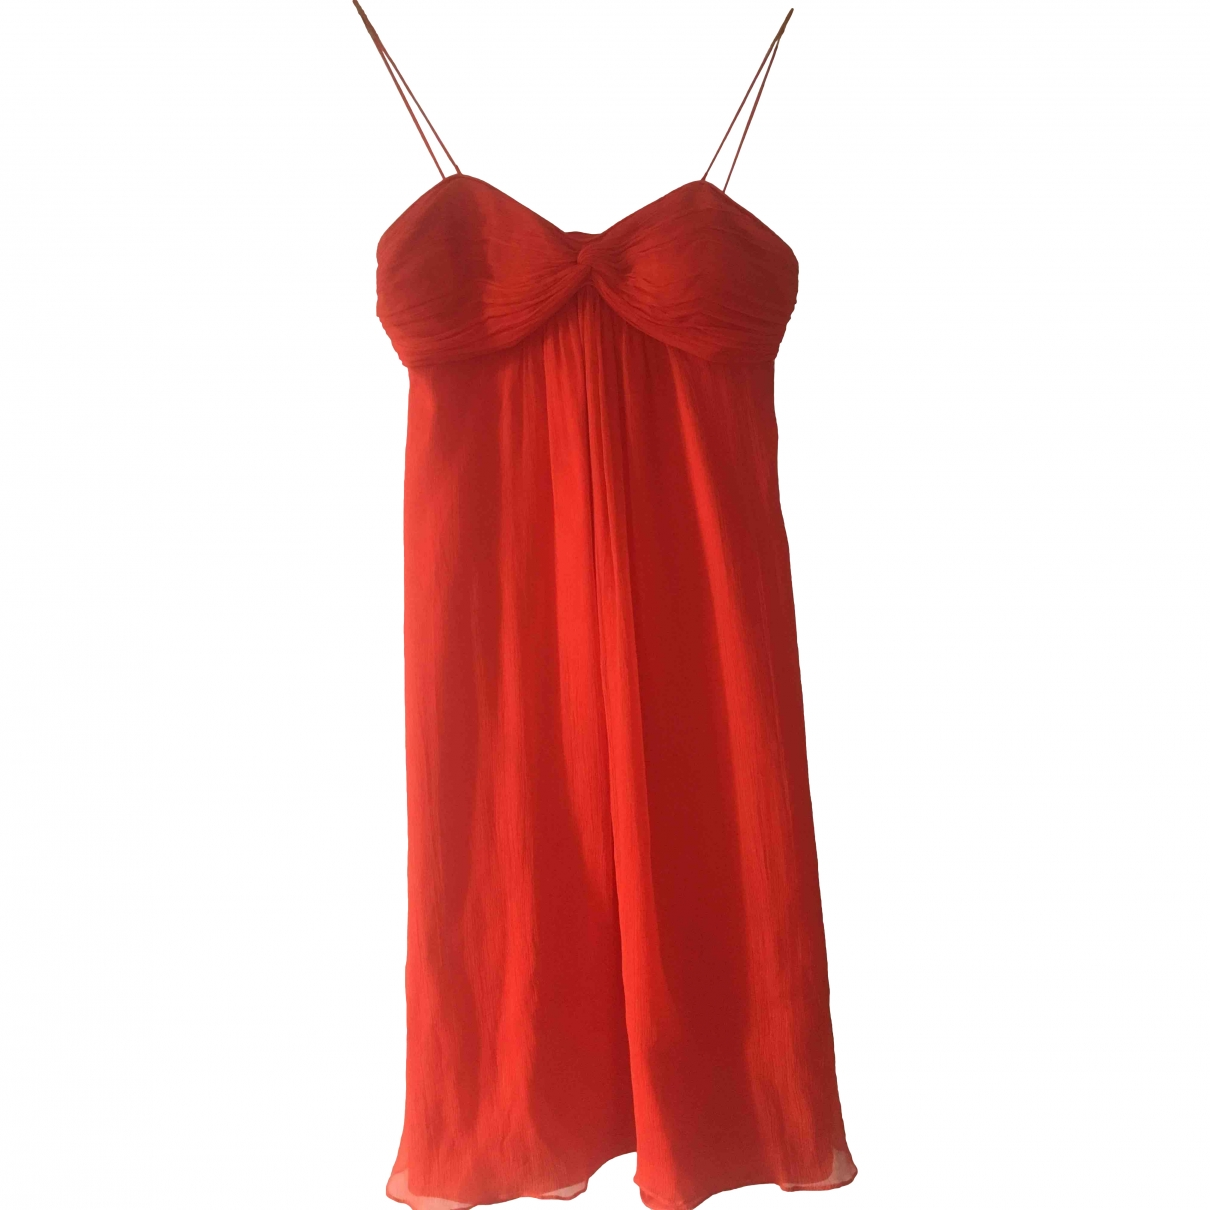 Zapa \N Orange Silk dress for Women 36 FR